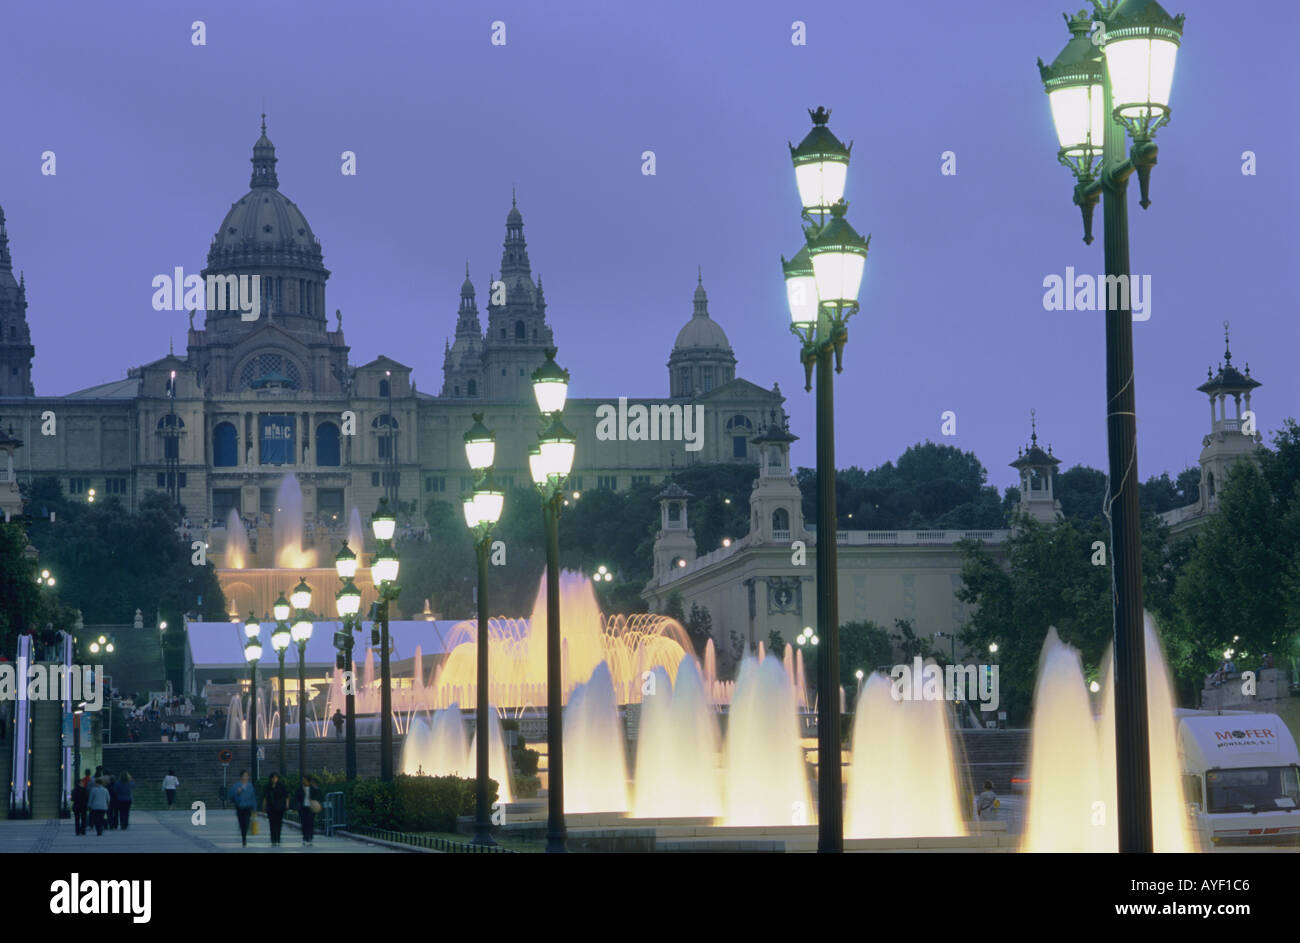 Spain Barcelona National Arts Museum - Stock Image